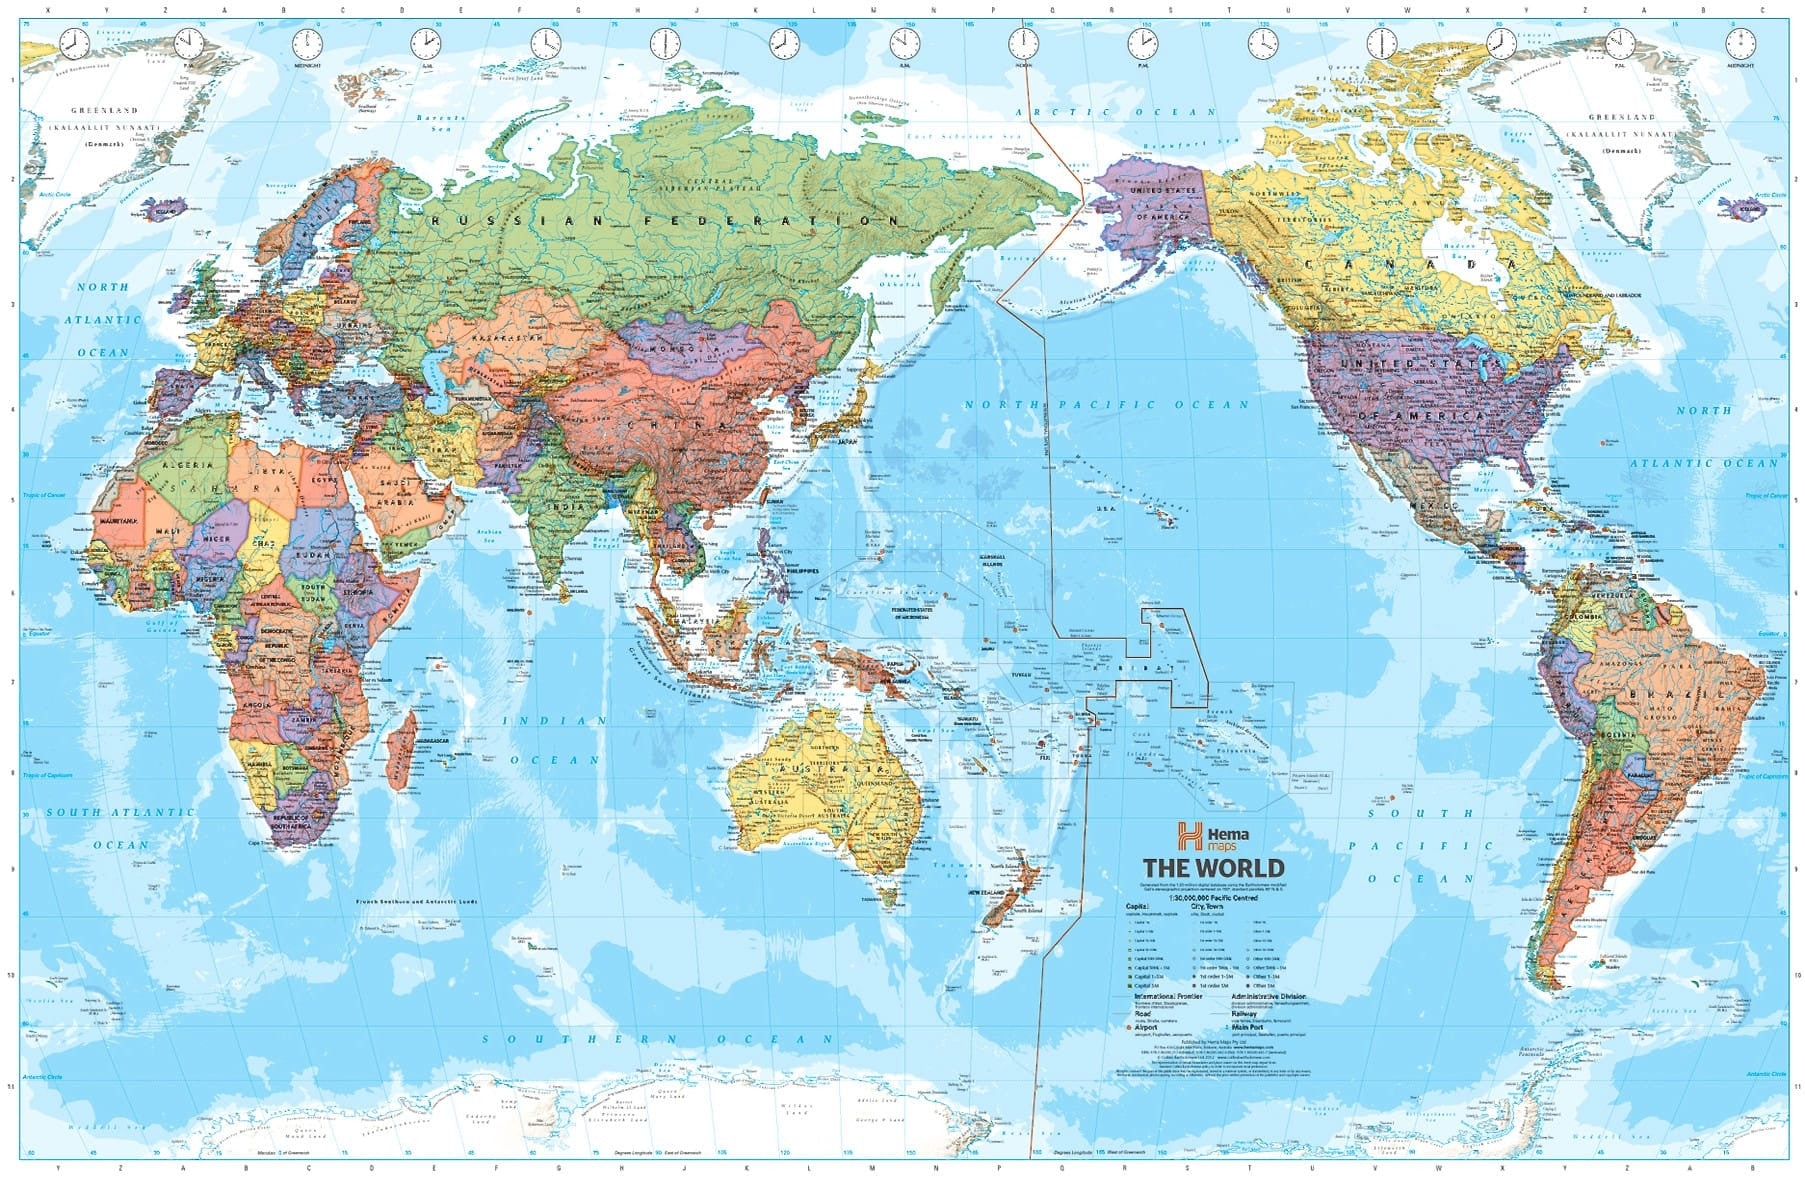 world hema mega map pacific centred 2320 x 1460mm paper